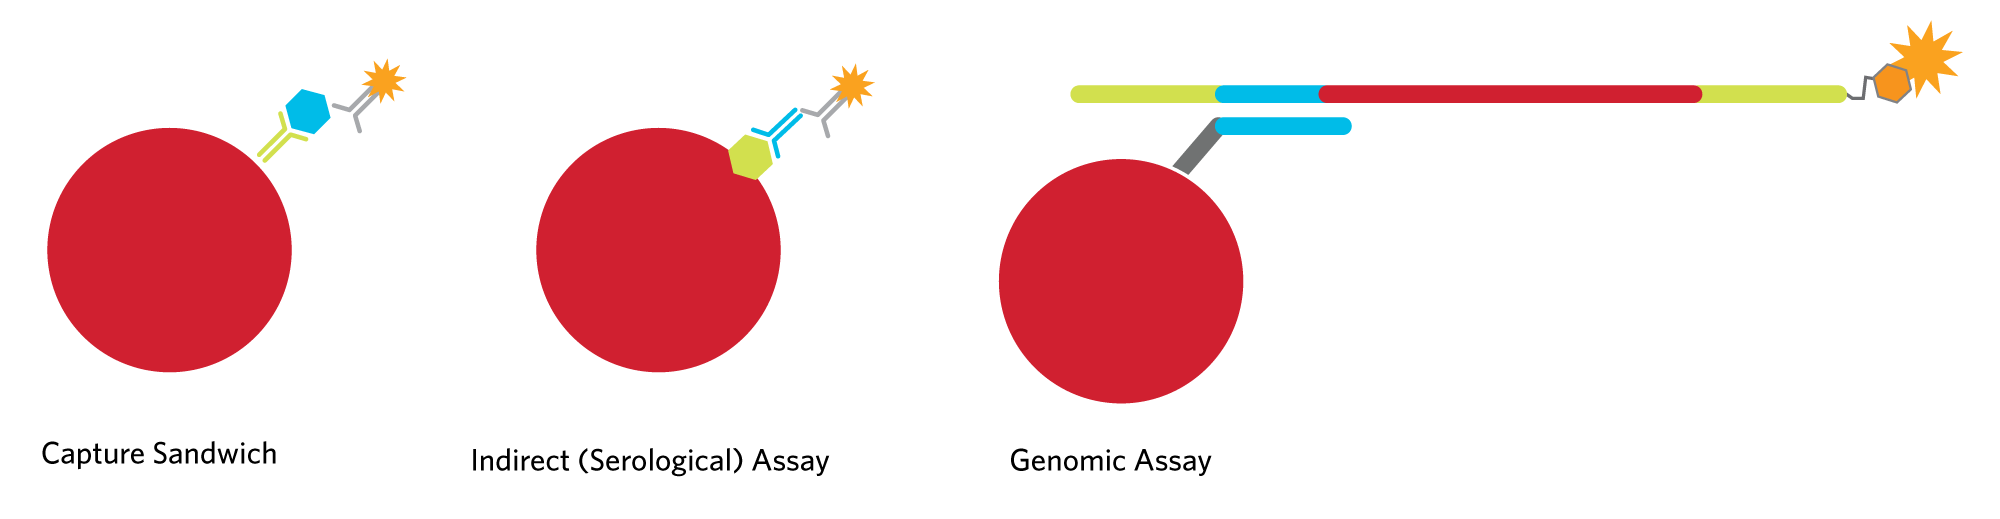 Protein-based Assay Chemistries